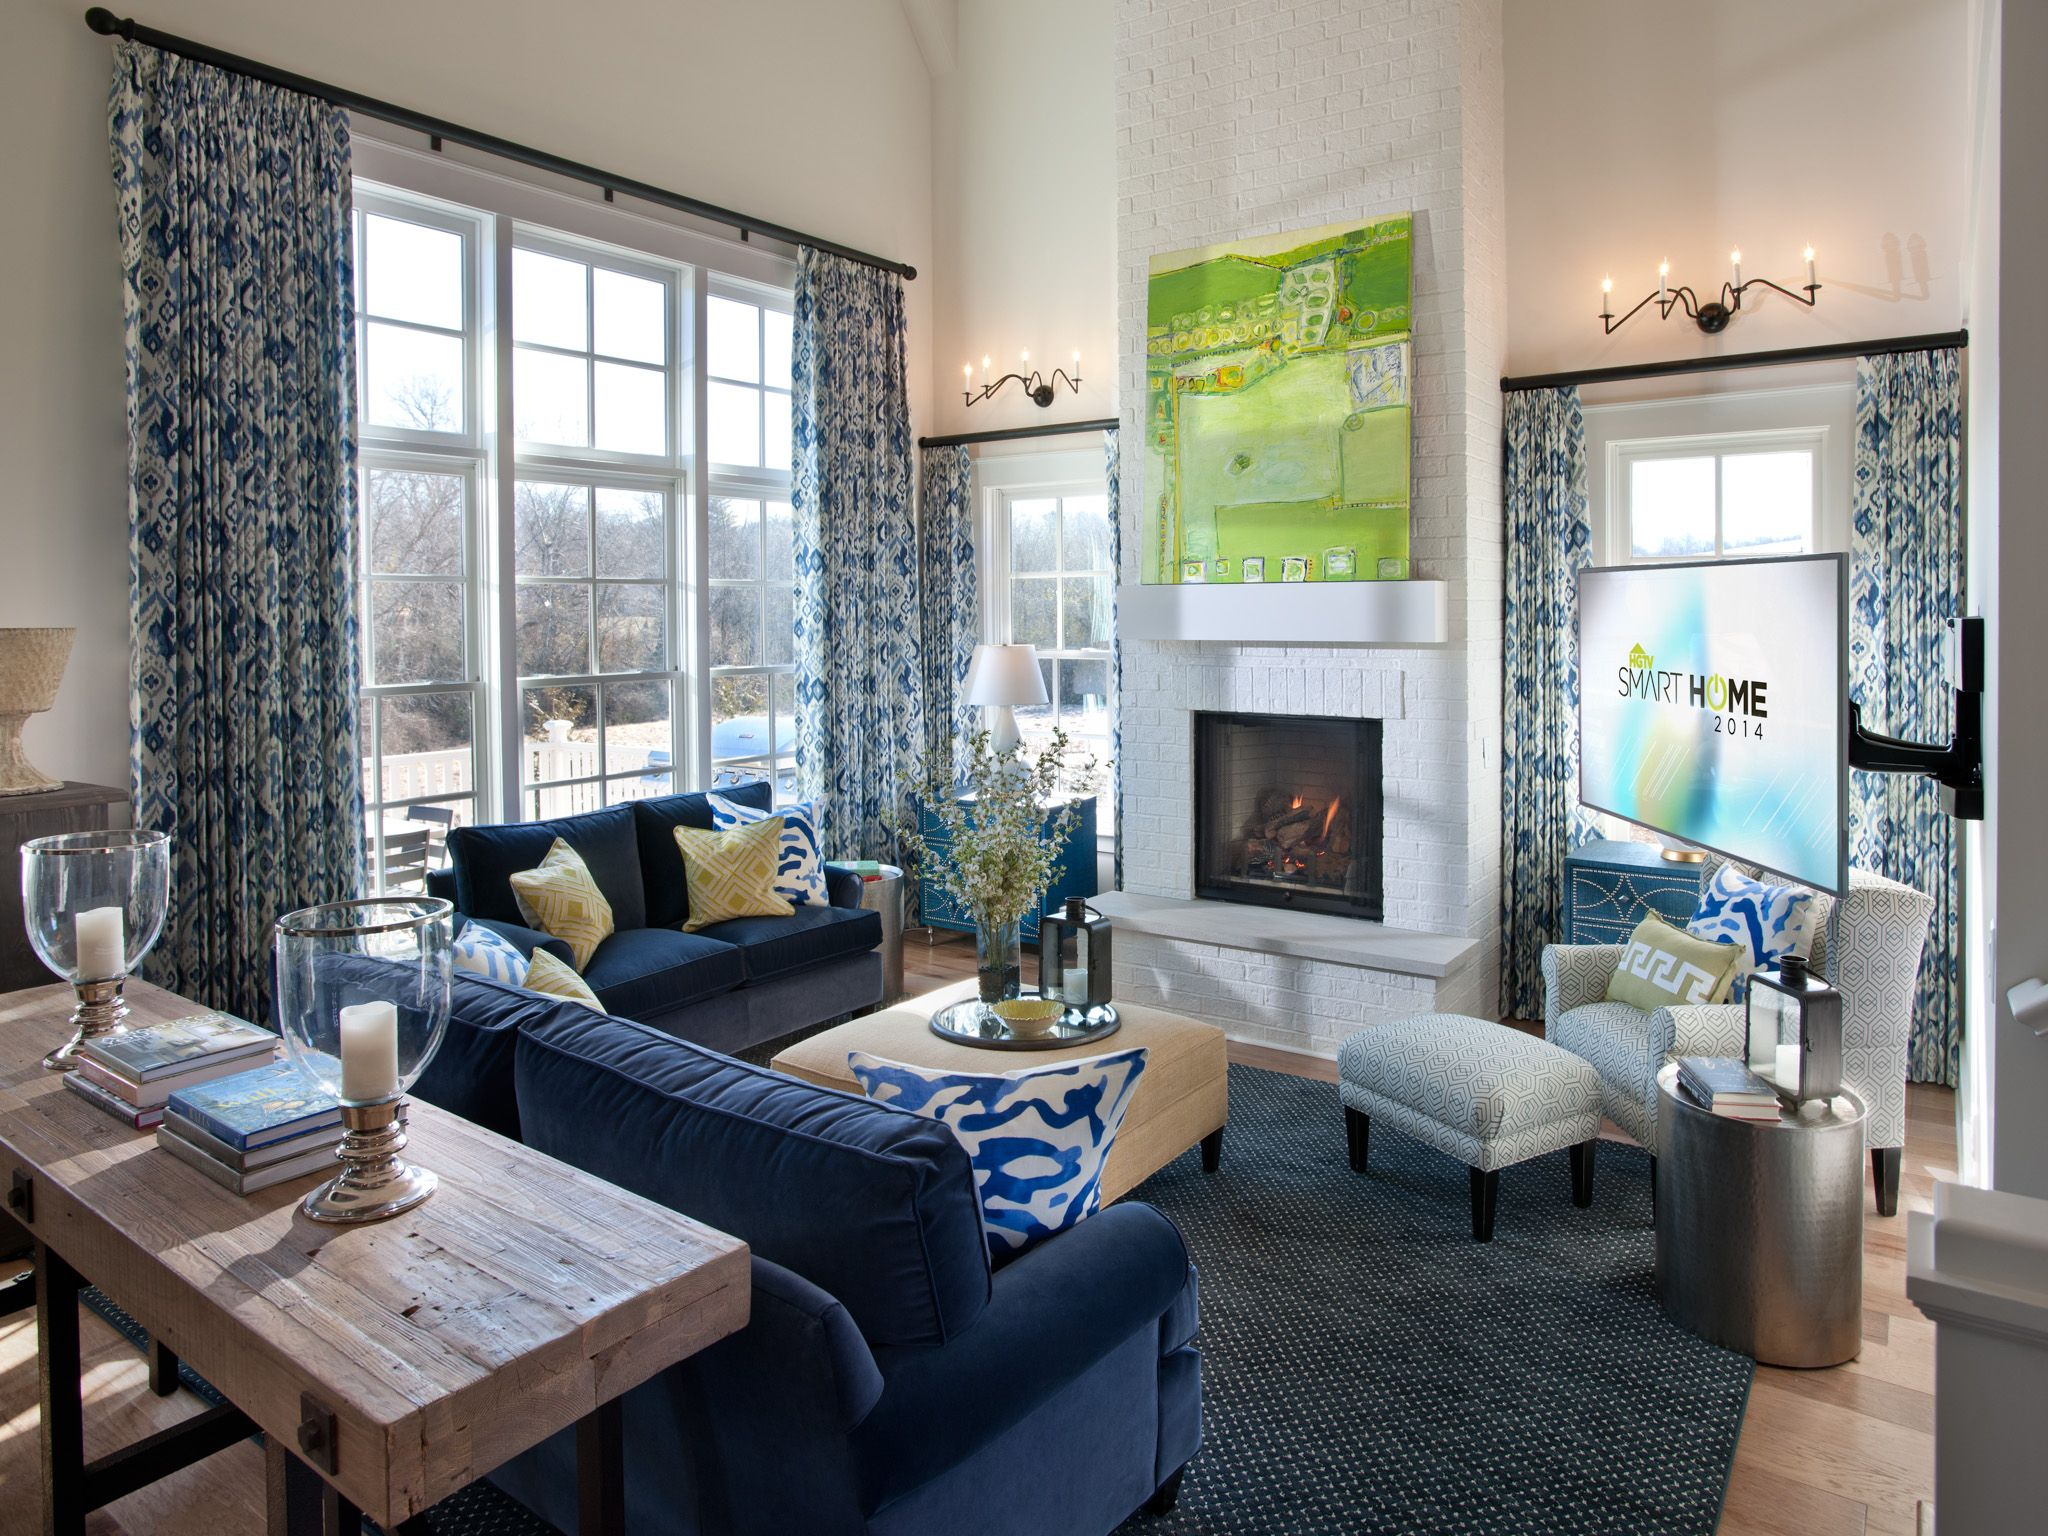 Luxury Living Room Home Decor Ideas Feature Navy Blue Sectional Sofa Design And Creamy Ottoman Coffee Table Al Great Rooms Luxury Home Decor Luxury Living Room